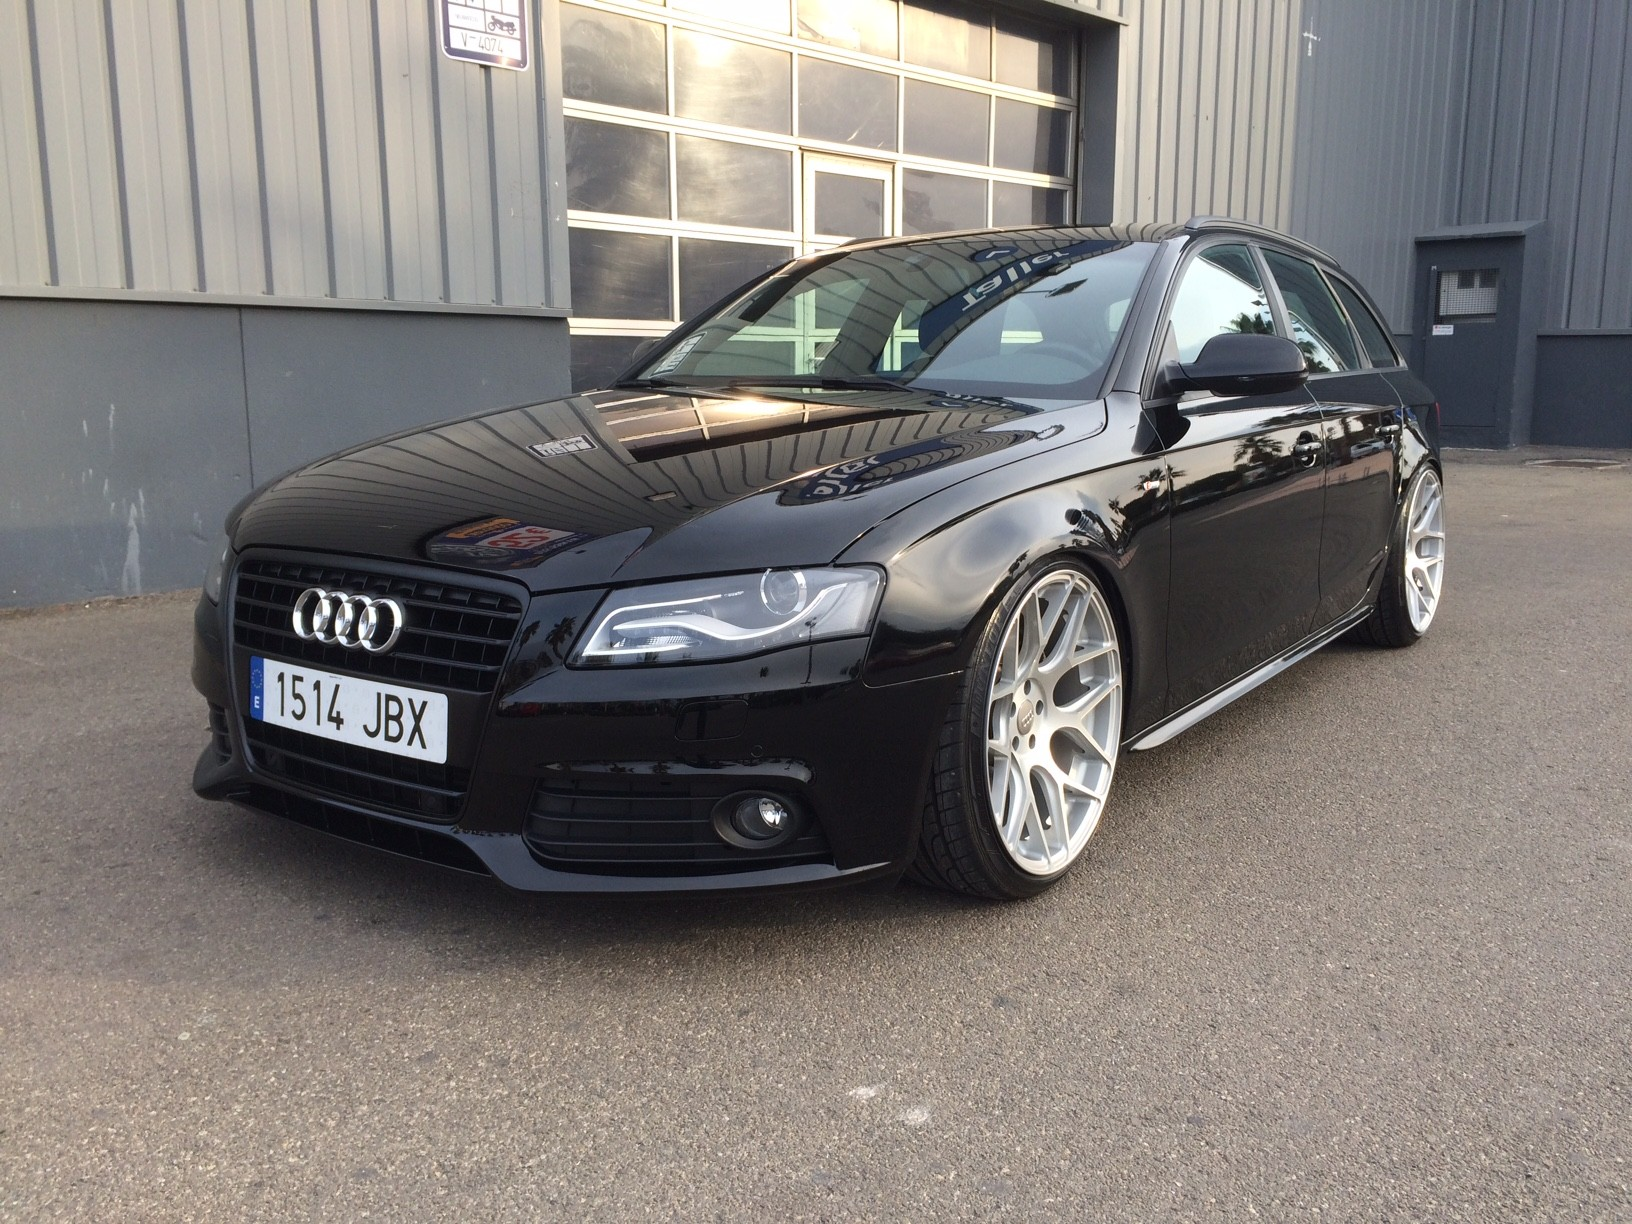 Audi a4 0 to 60